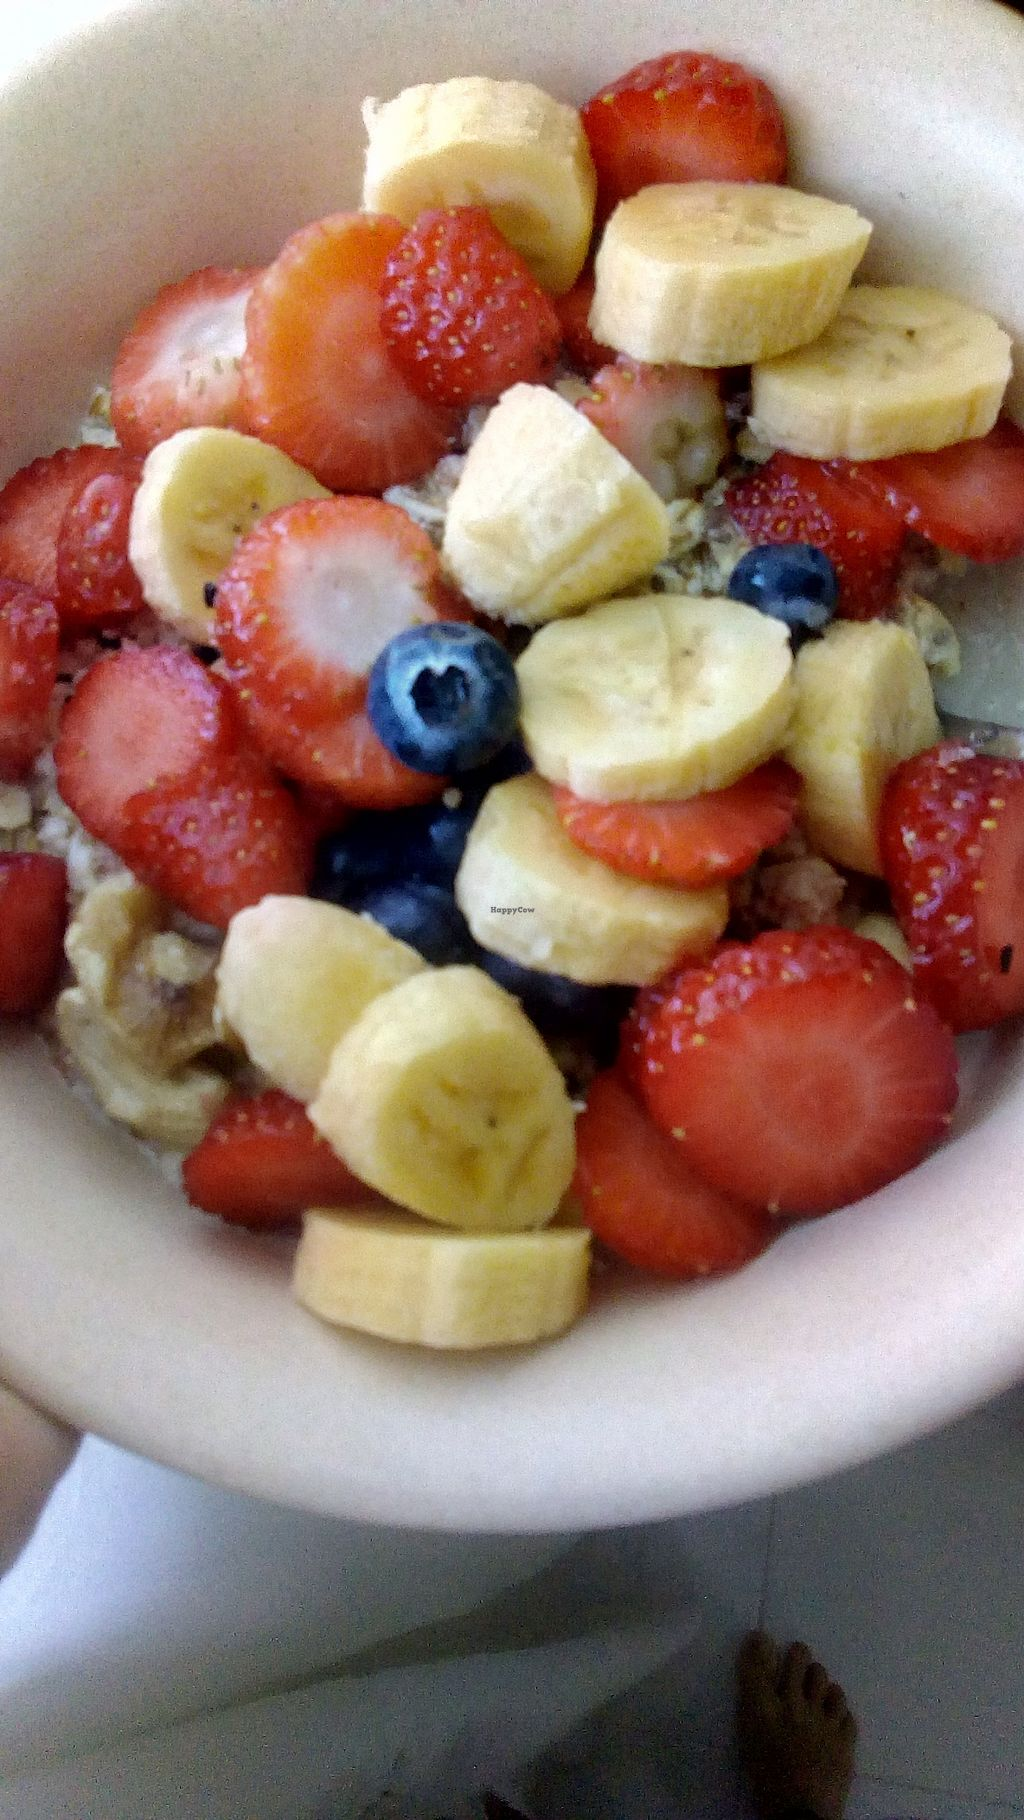 "Photo of U are Brilliant Homestay  by <a href=""/members/profile/u_are_brilliant"">u_are_brilliant</a> <br/>Vegan oatmeal breakfast! <br/> July 14, 2017  - <a href='/contact/abuse/image/88363/280312'>Report</a>"